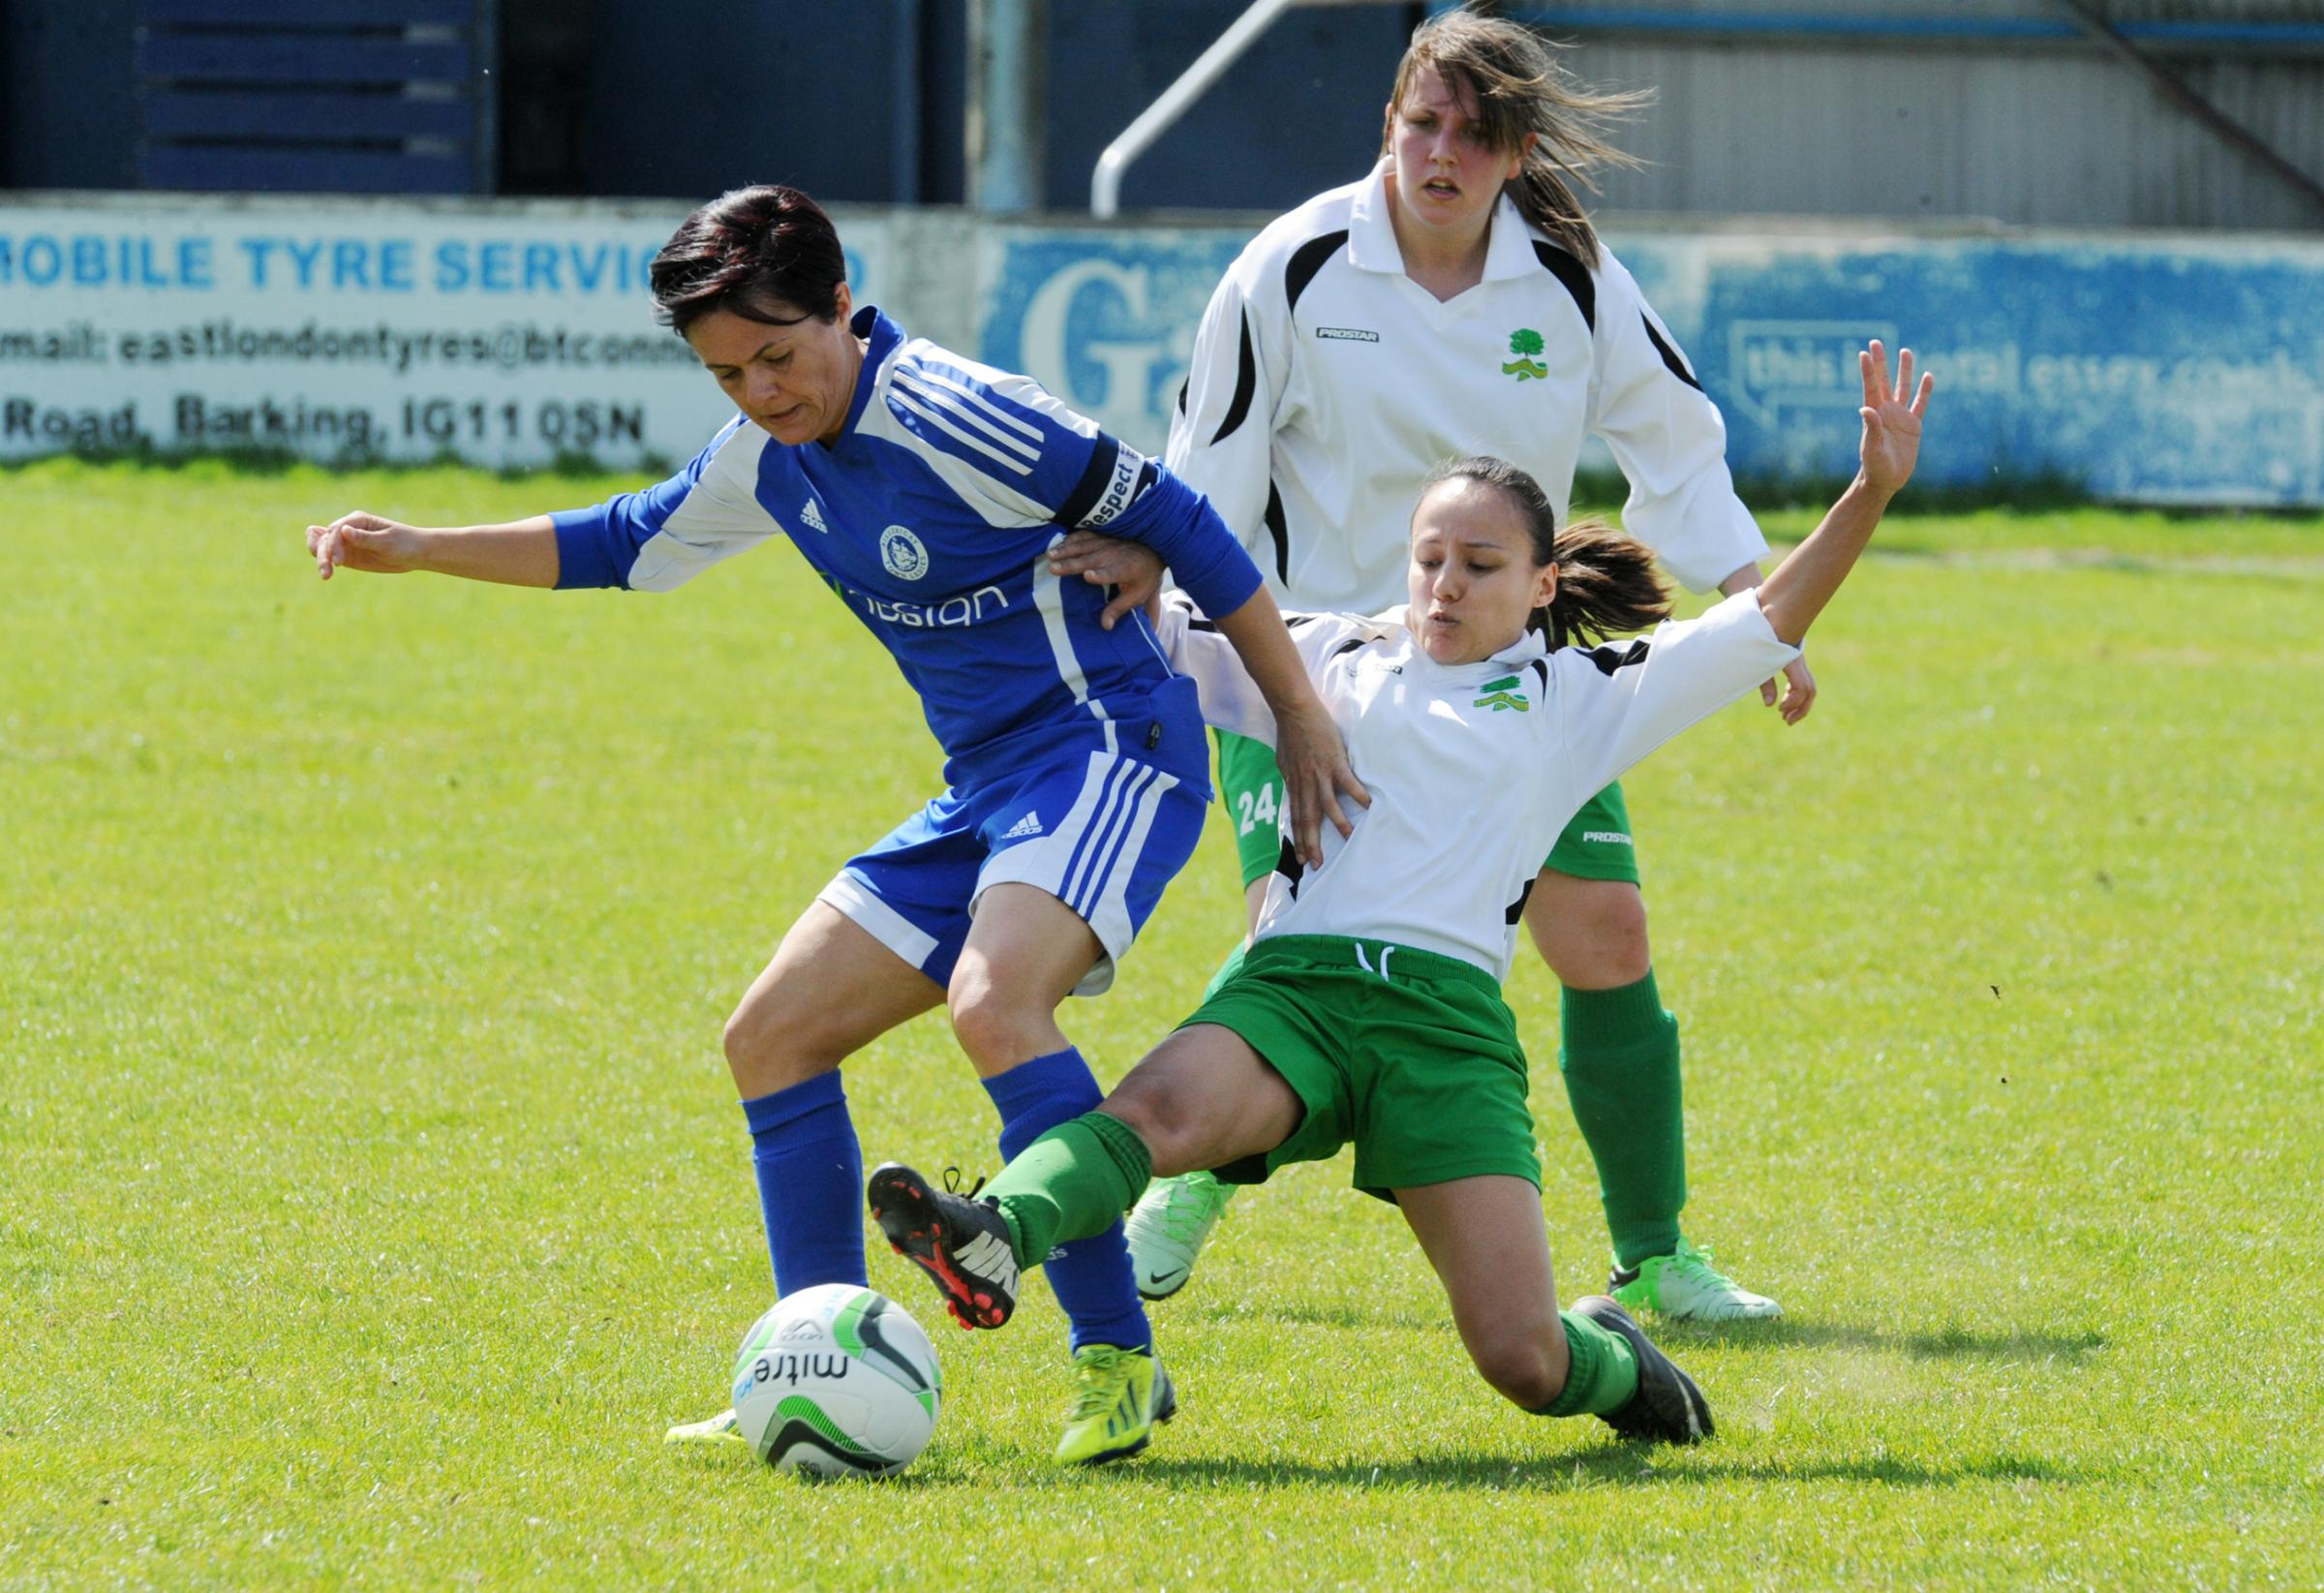 Brace — Marie Barker netted two goals for Billericay Town